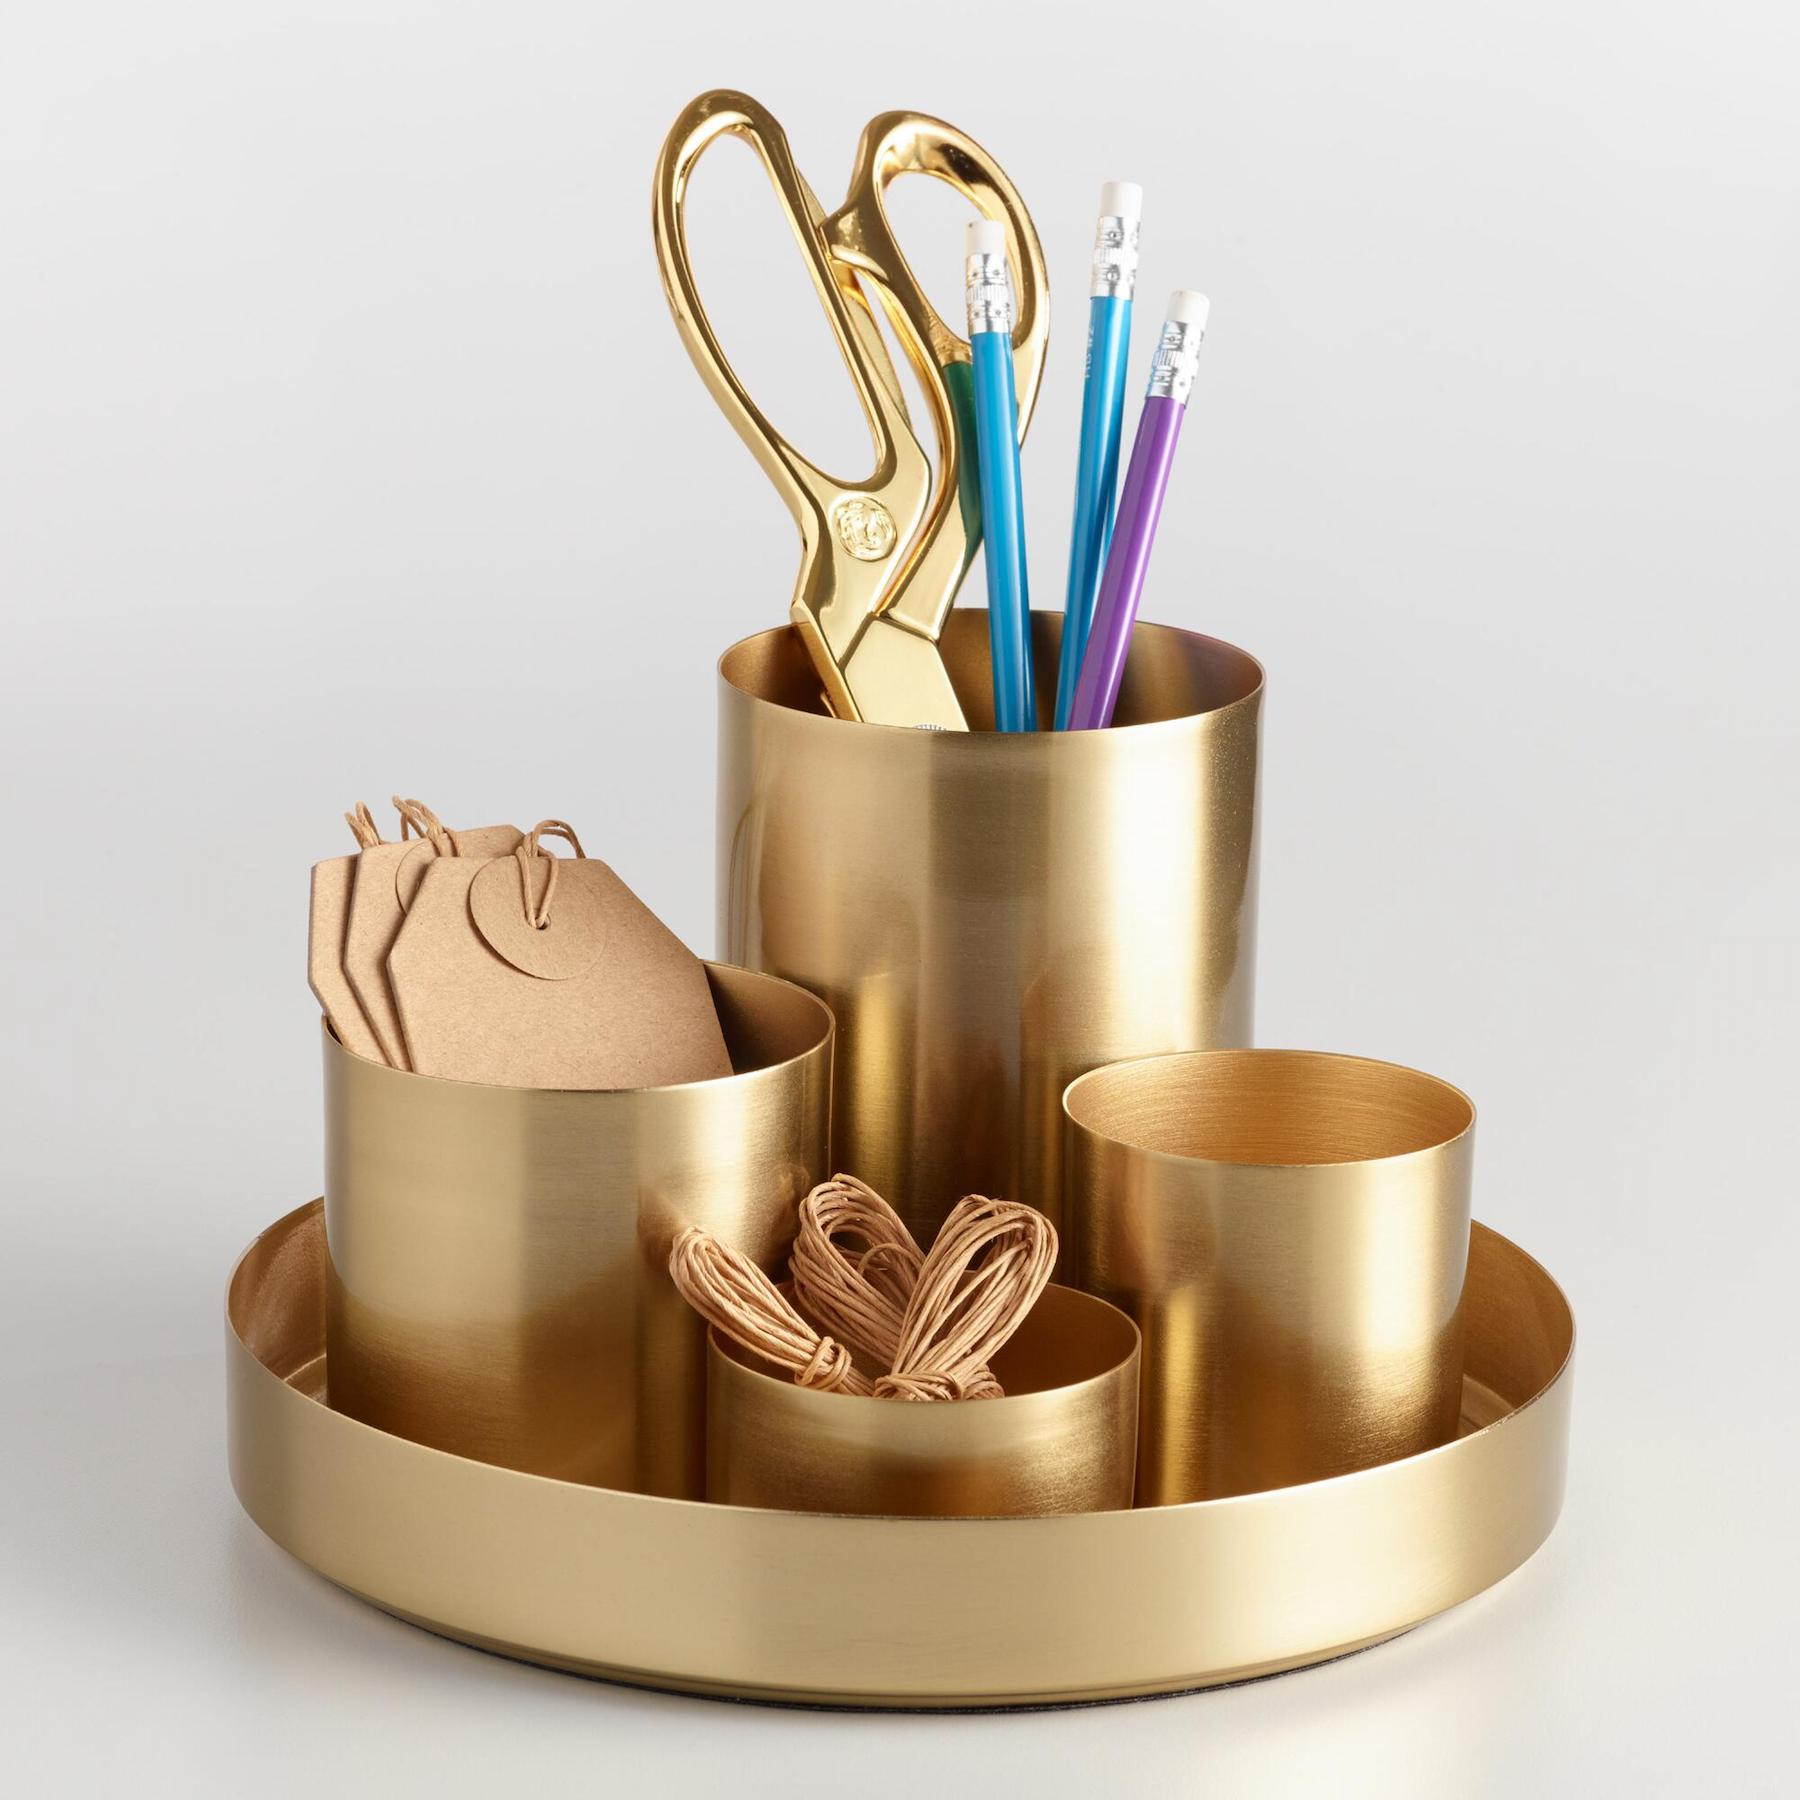 10 Best Desk Organizers for an Exceptionally Tidy Office